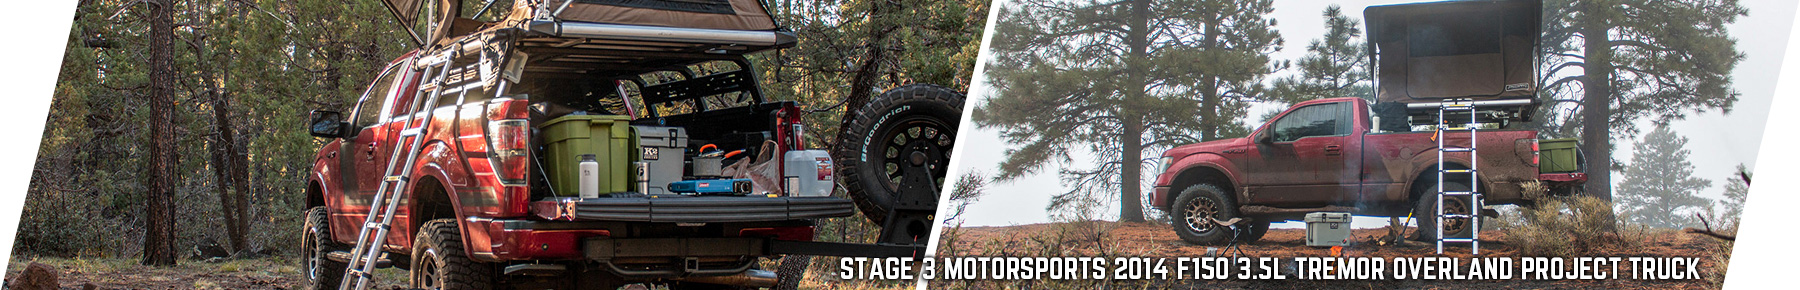 Stage-3-Motorsports-2014-F150-3.5L-Tremor-Overland-Project-Truck